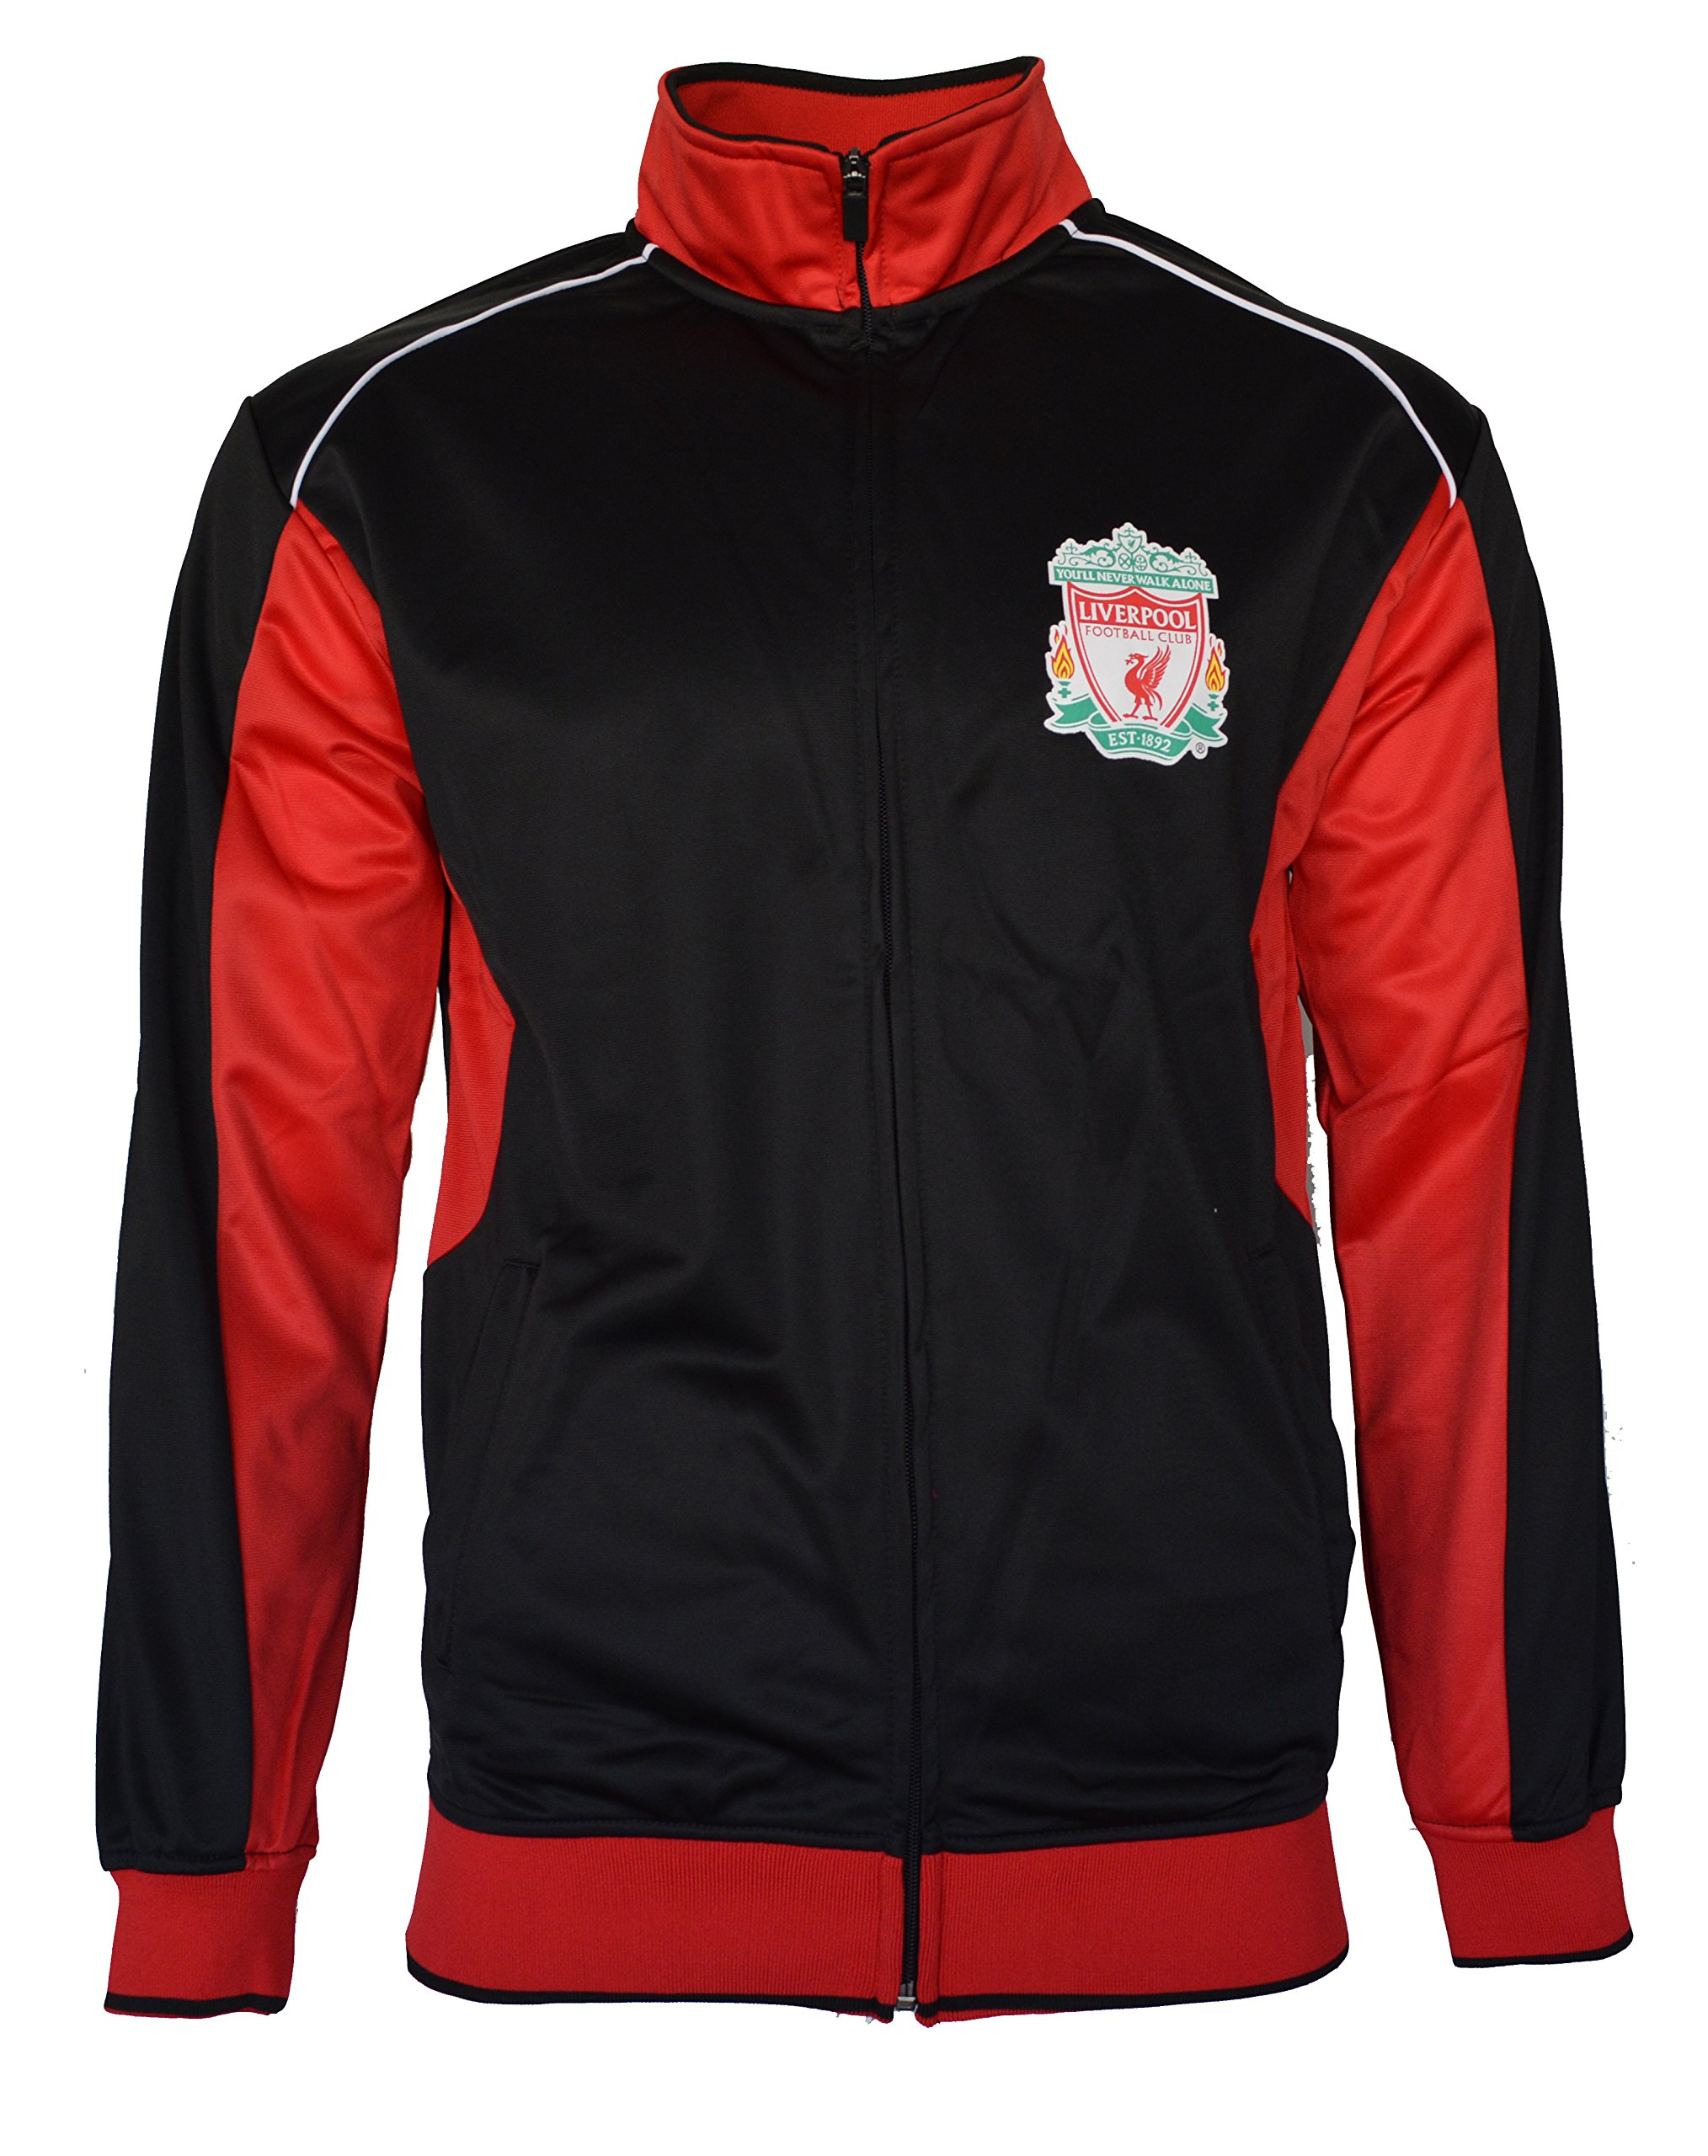 Liverpool Track Jacket Youth Boys Zip Front Soccer Football Official Merchandise (YL, BLACK BB1H-02)